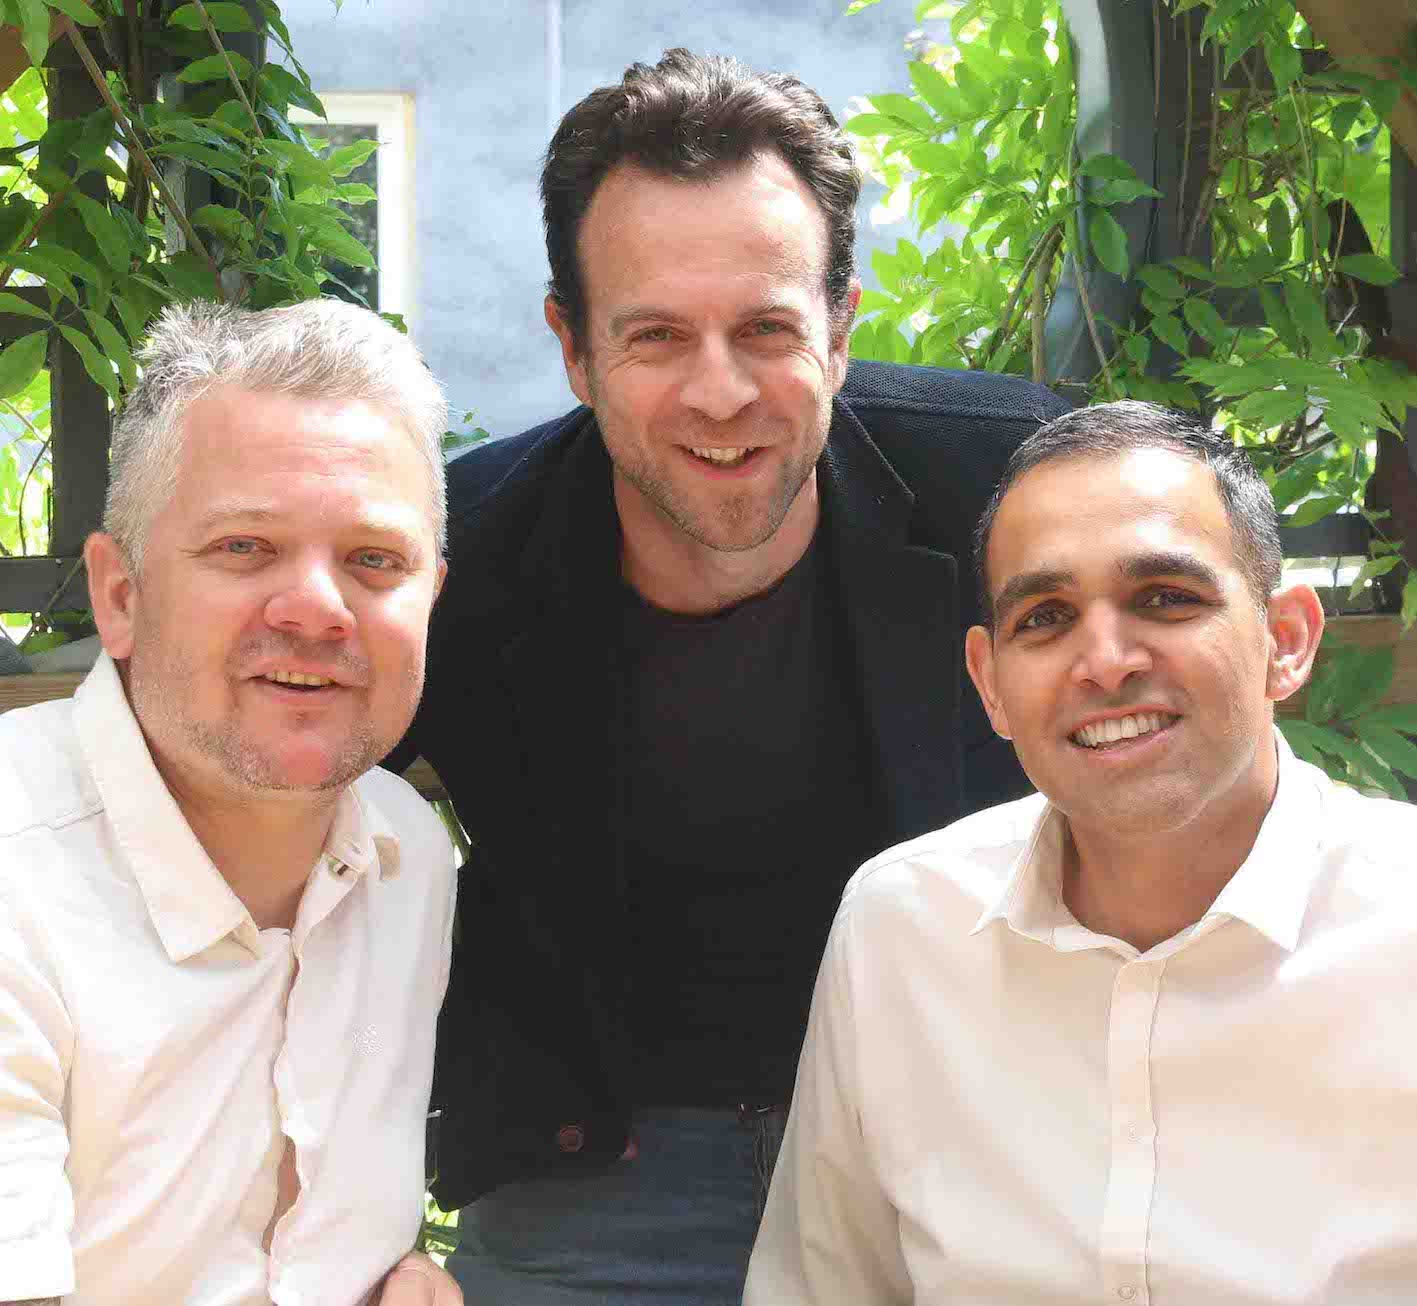 Mark Benewith, James Burton and Darren Taylor of Working Travel Group[1]